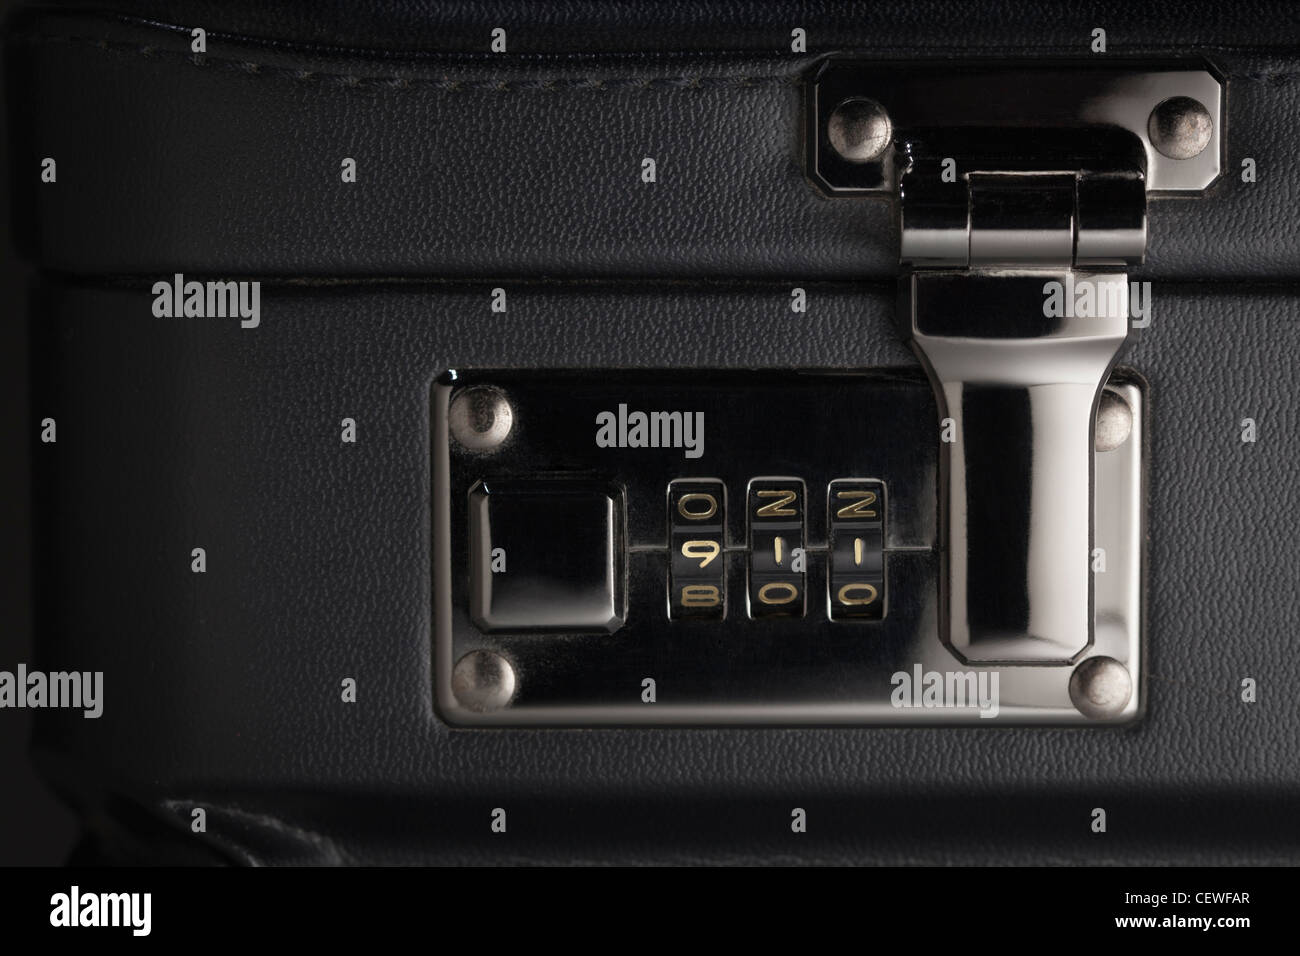 Briefcase Abstract with the Numbers 911 on Lock. - Stock Image